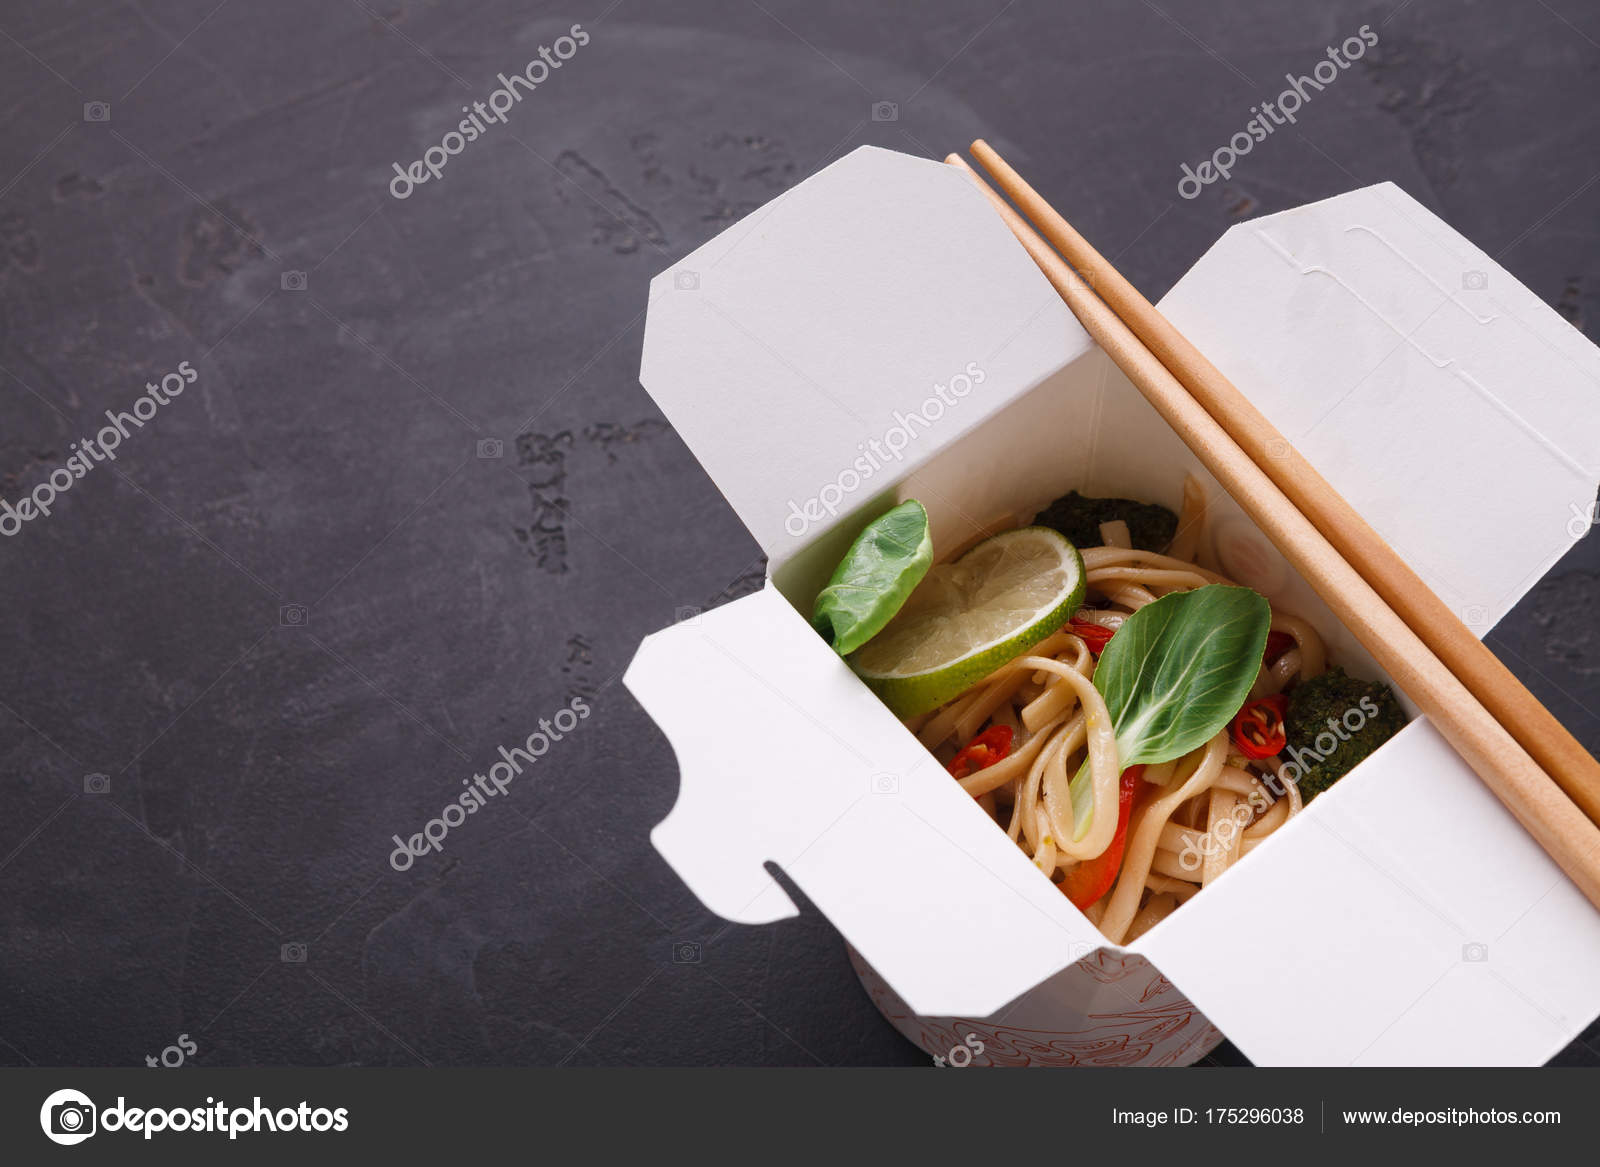 Pho Delivery Asian Food In Delivery Box On Gray Background Stock Photo